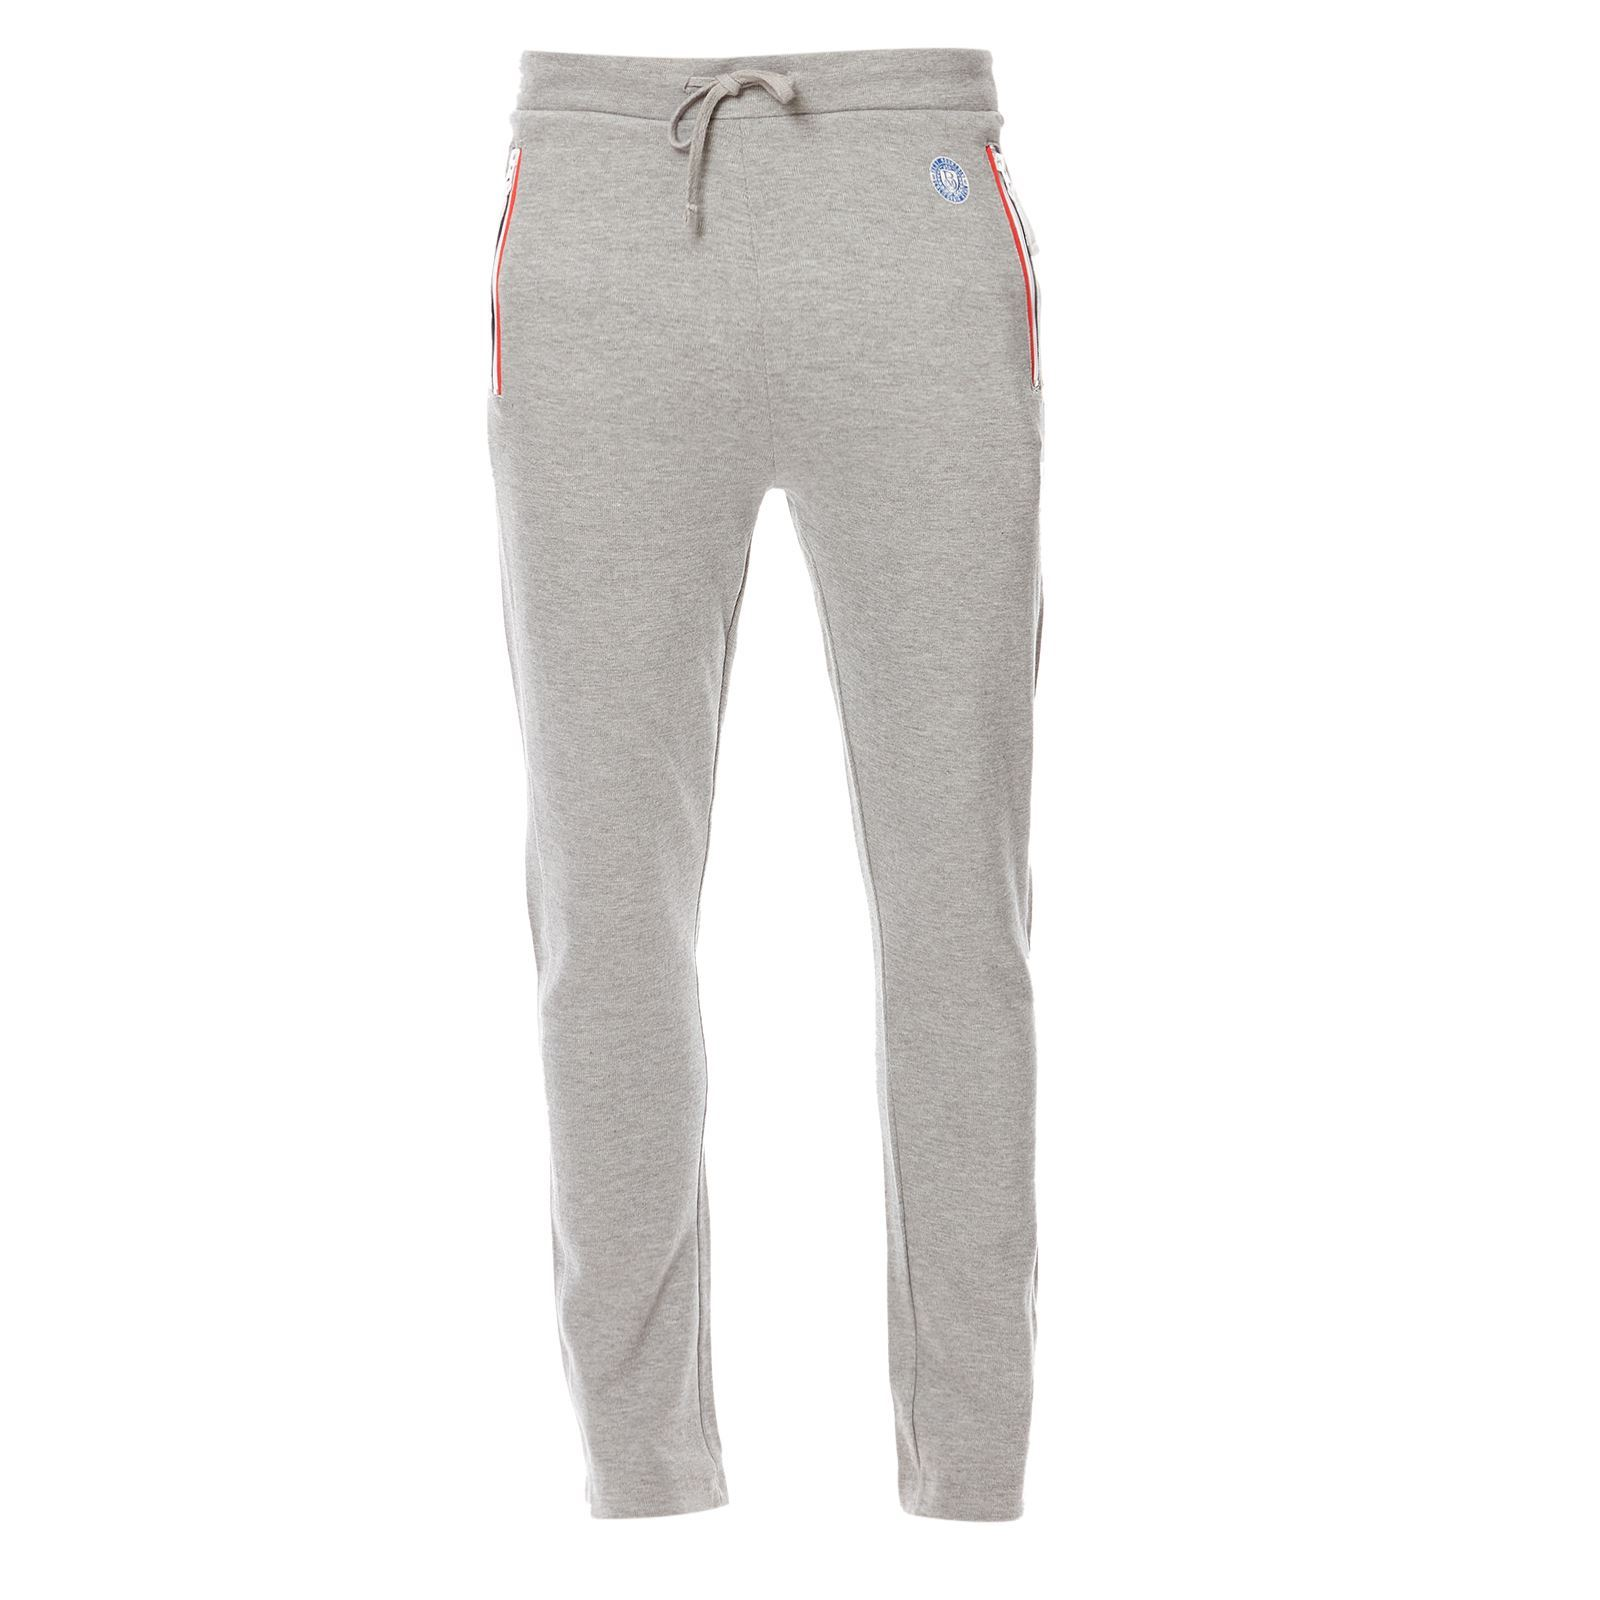 Chine Jogging Brandalley Best Coton Mountain En Gris g8a08pXqn 2c74cfcd19f